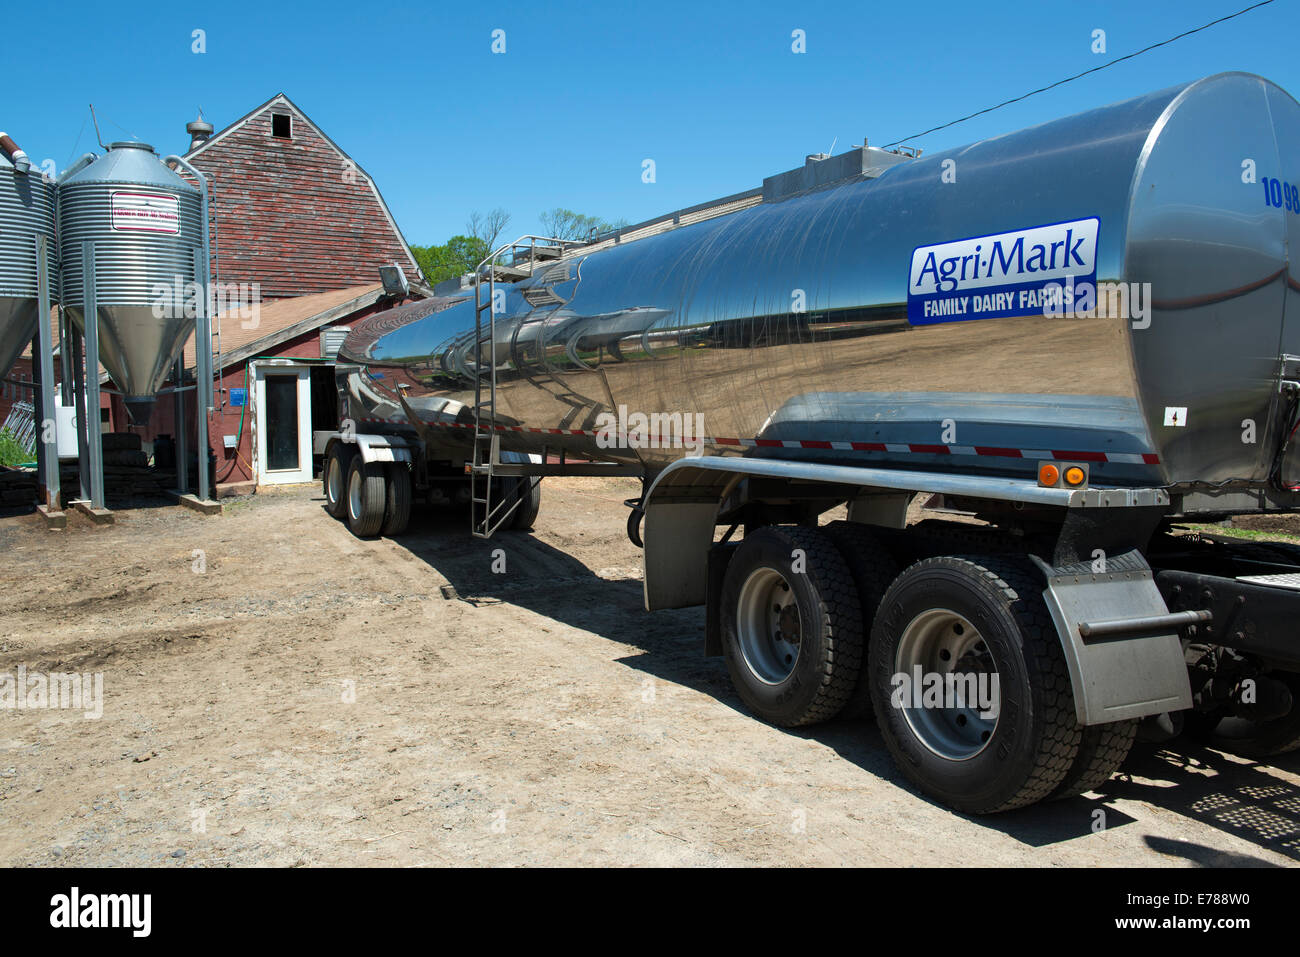 Tank or tanker truck visits dairy farm collecting milk for Agri-Mark cooperative.  Woodbury, CT. - Stock Image